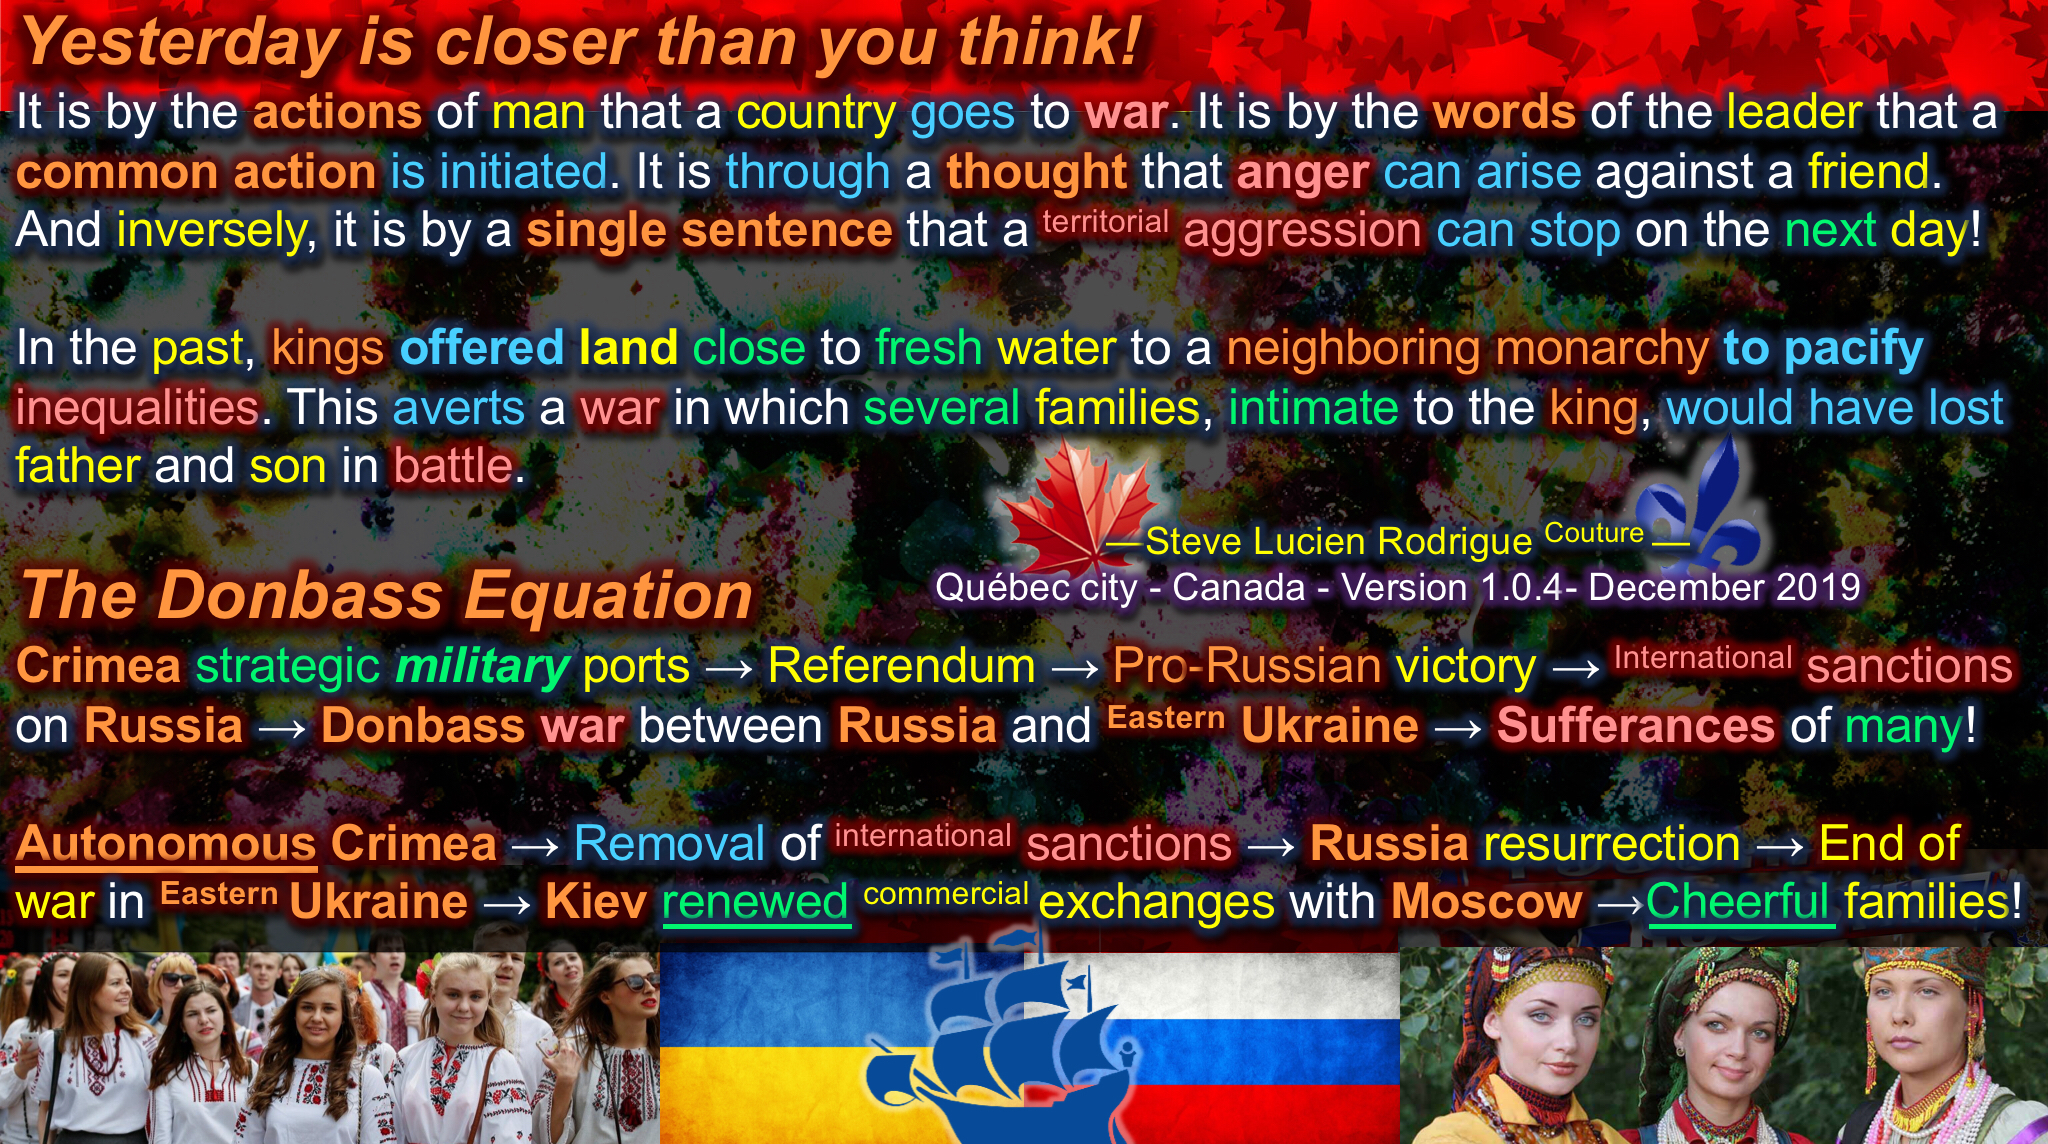 The Donbass Equation